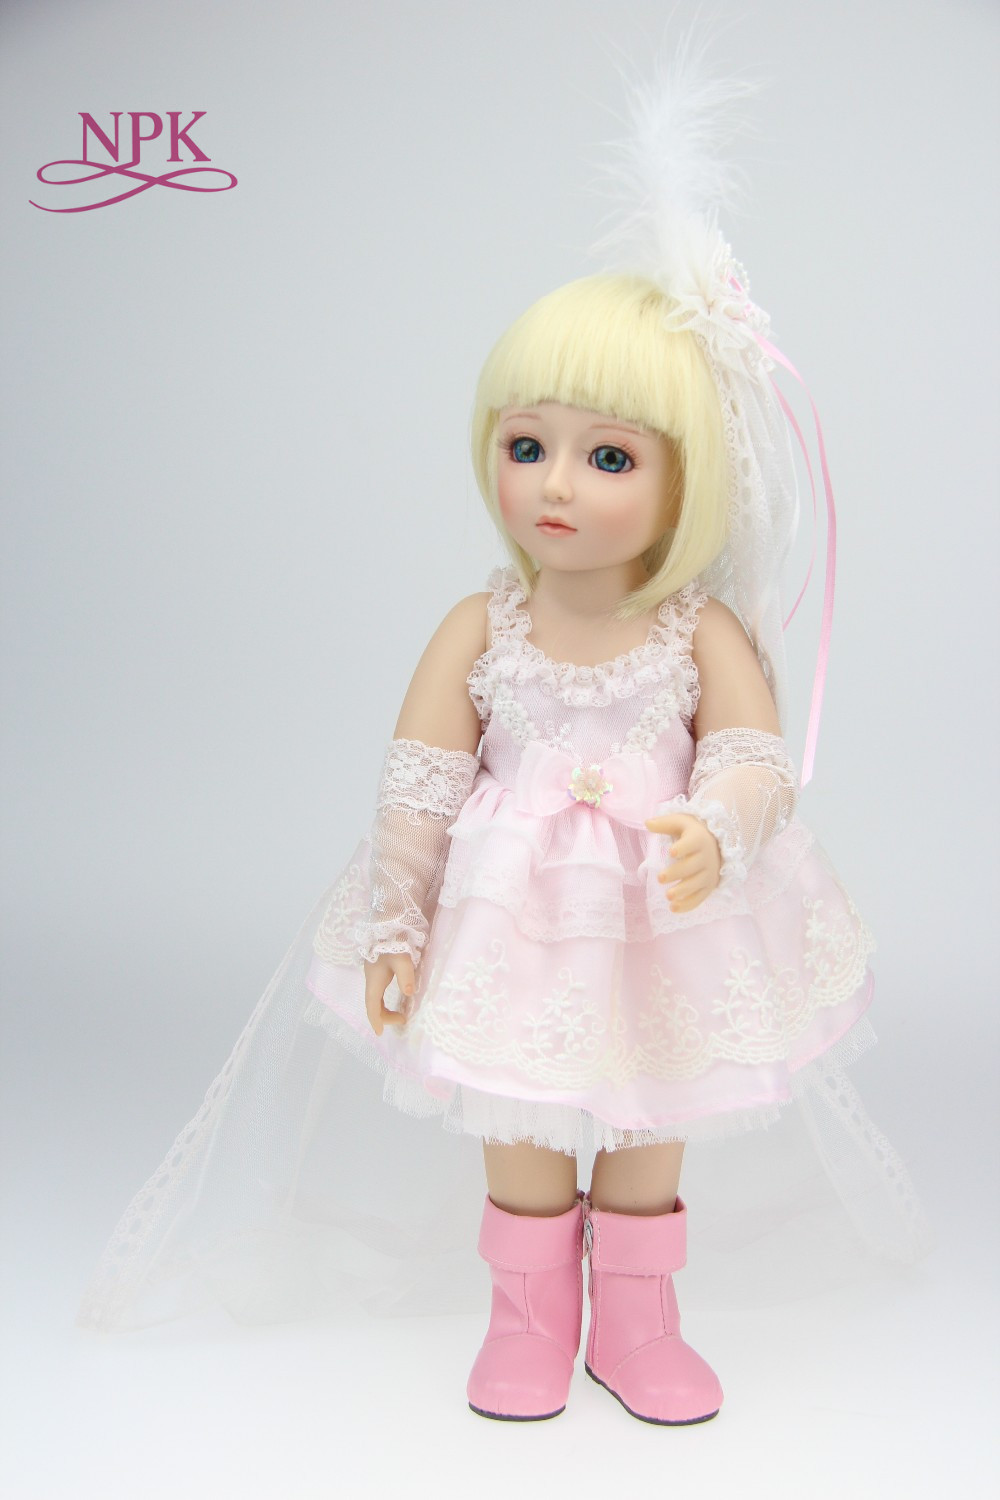 NPK 45CM BJD Doll Princess Doll Reborn Baby Alive Toys for Girls Gifts 18 Inch Girls Dolls vinyl Toy Dolls for Kids Brinquedos new 18 american girl doll toys with full vinyl body princess baby toy dolls for girls brinquedos kids birthday christmas gifts